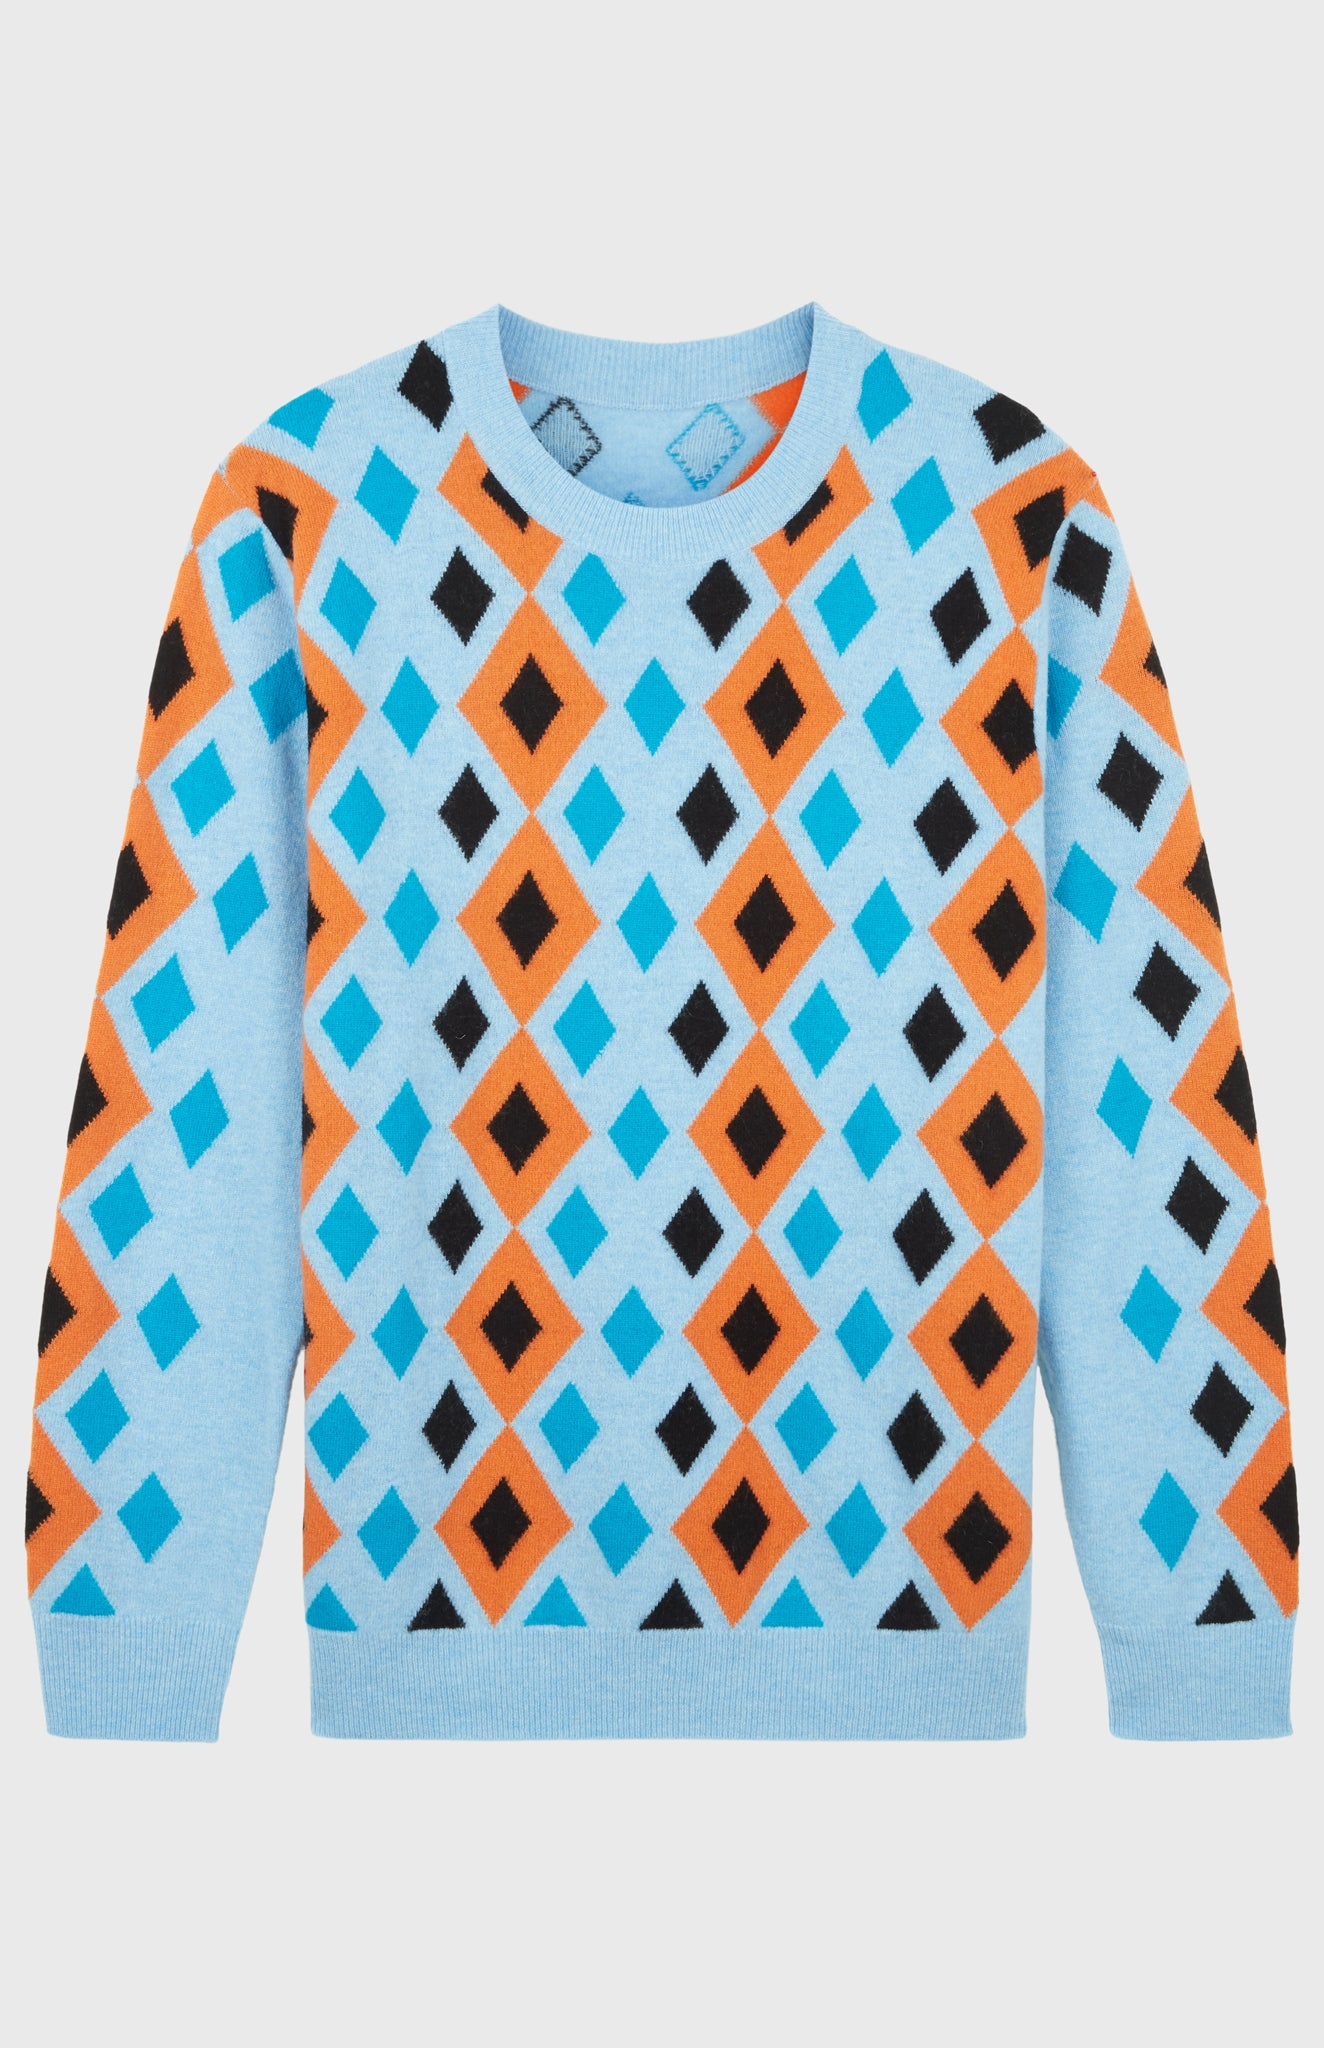 Pringle Reissued Unisex Multi Diamond Argyle Jumper In Light Blue